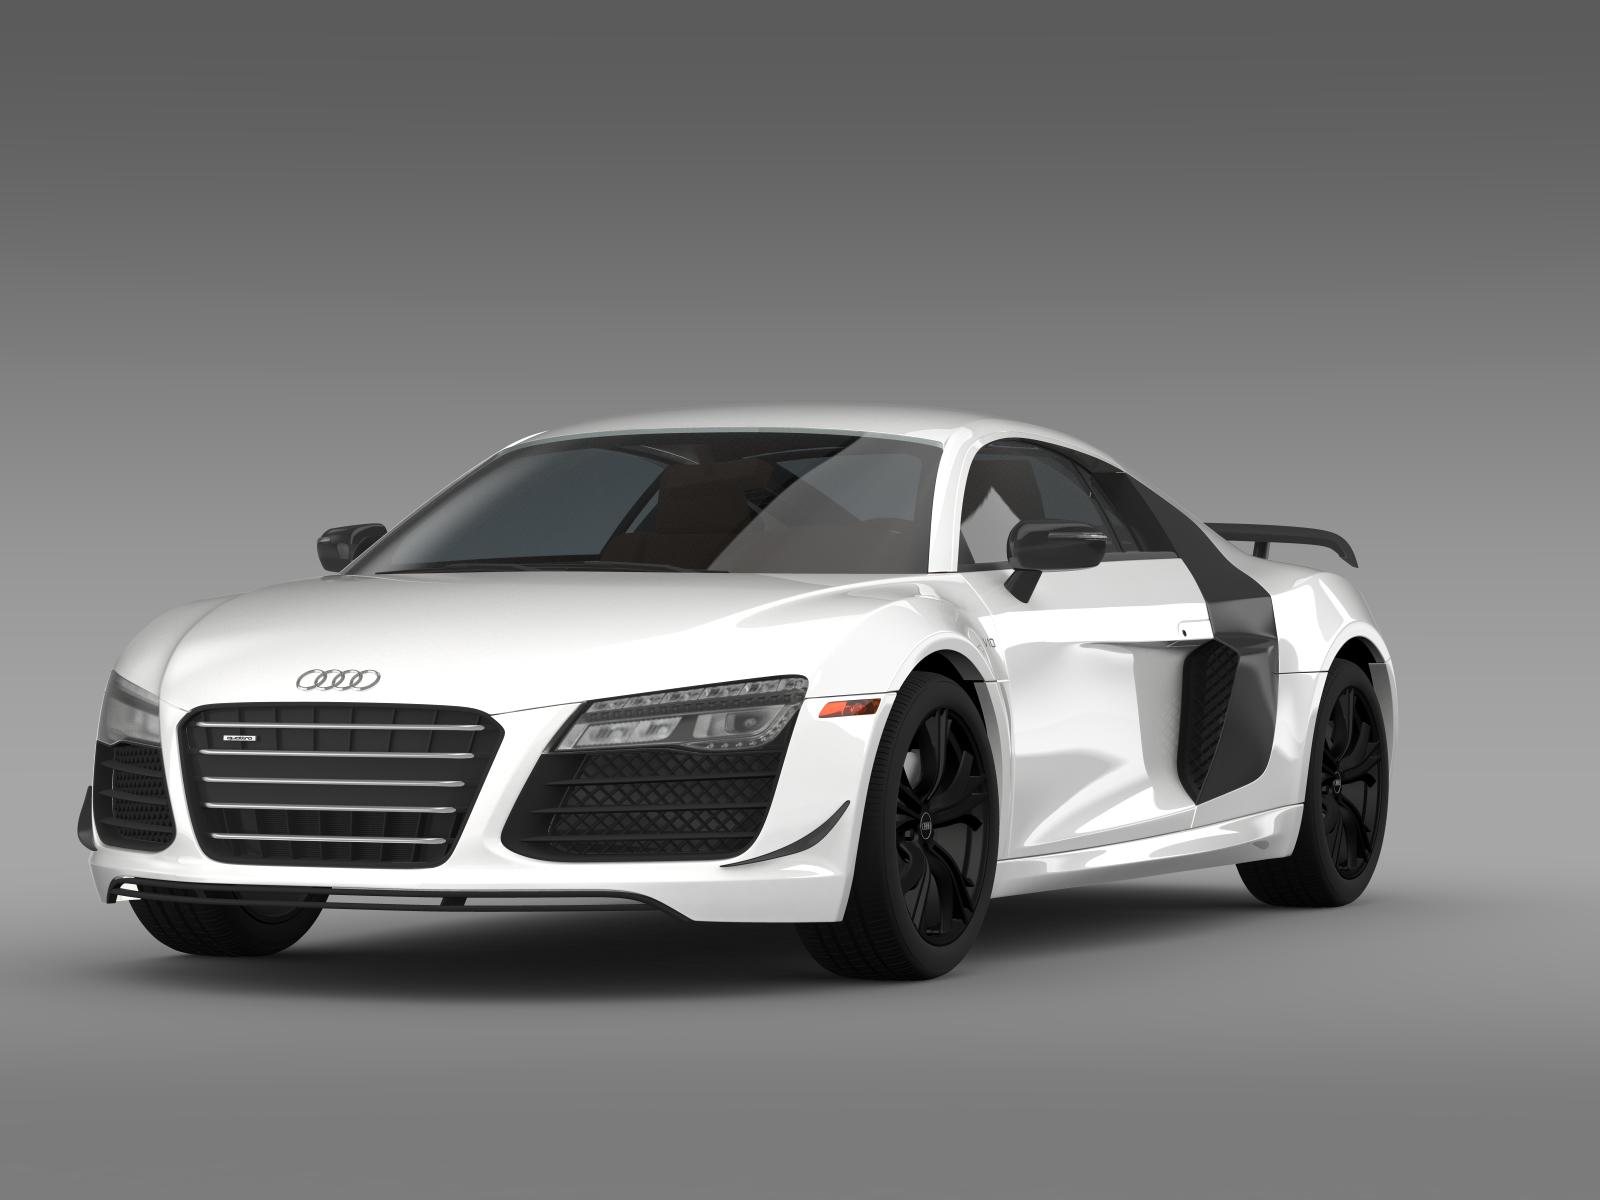 audi r8 competition 2015 3d model. Black Bedroom Furniture Sets. Home Design Ideas